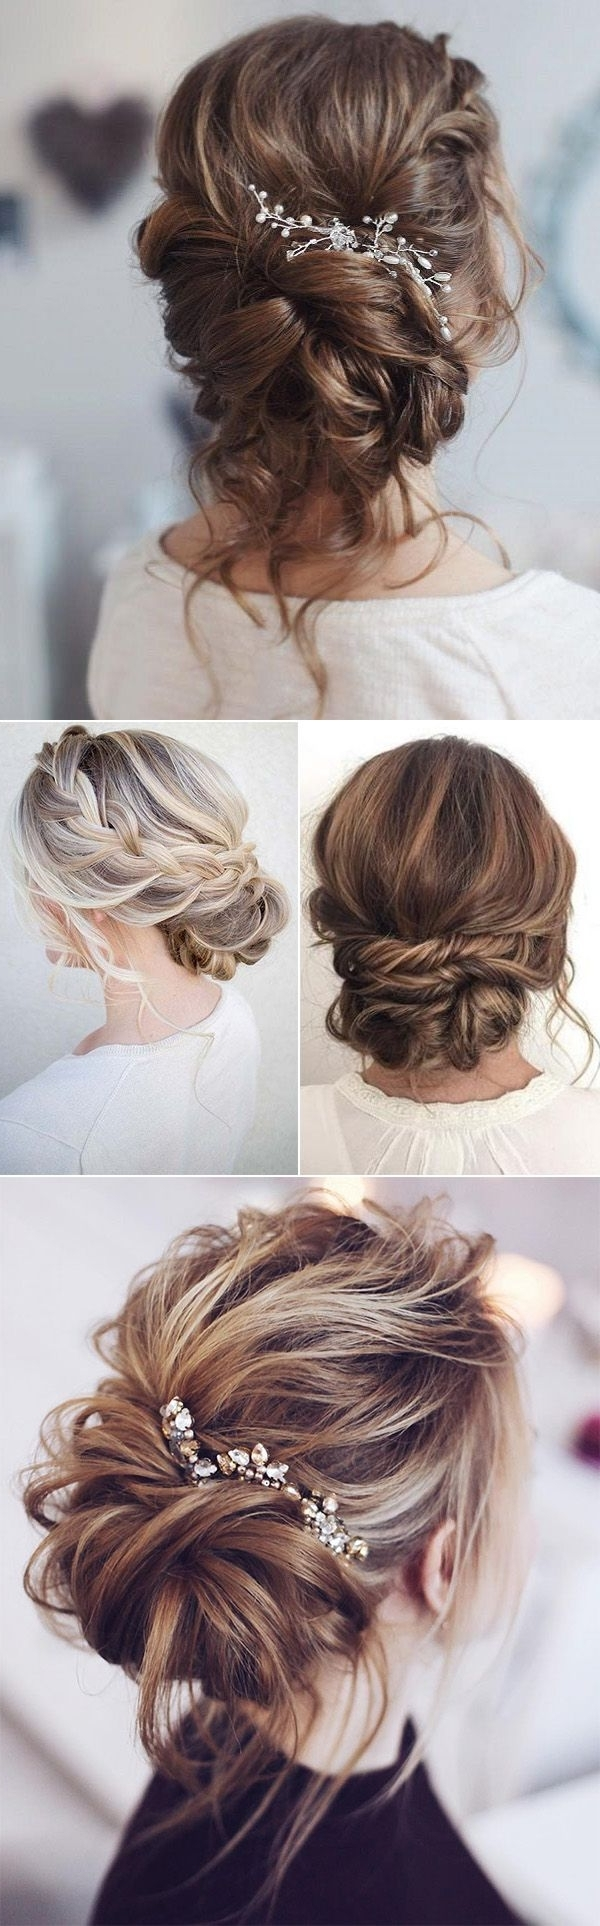 Current Wedding Hairstyles For Long Loose Hair Intended For 25 Drop Dead Bridal Updo Hairstyles Ideas For Any Wedding Venues (View 6 of 15)